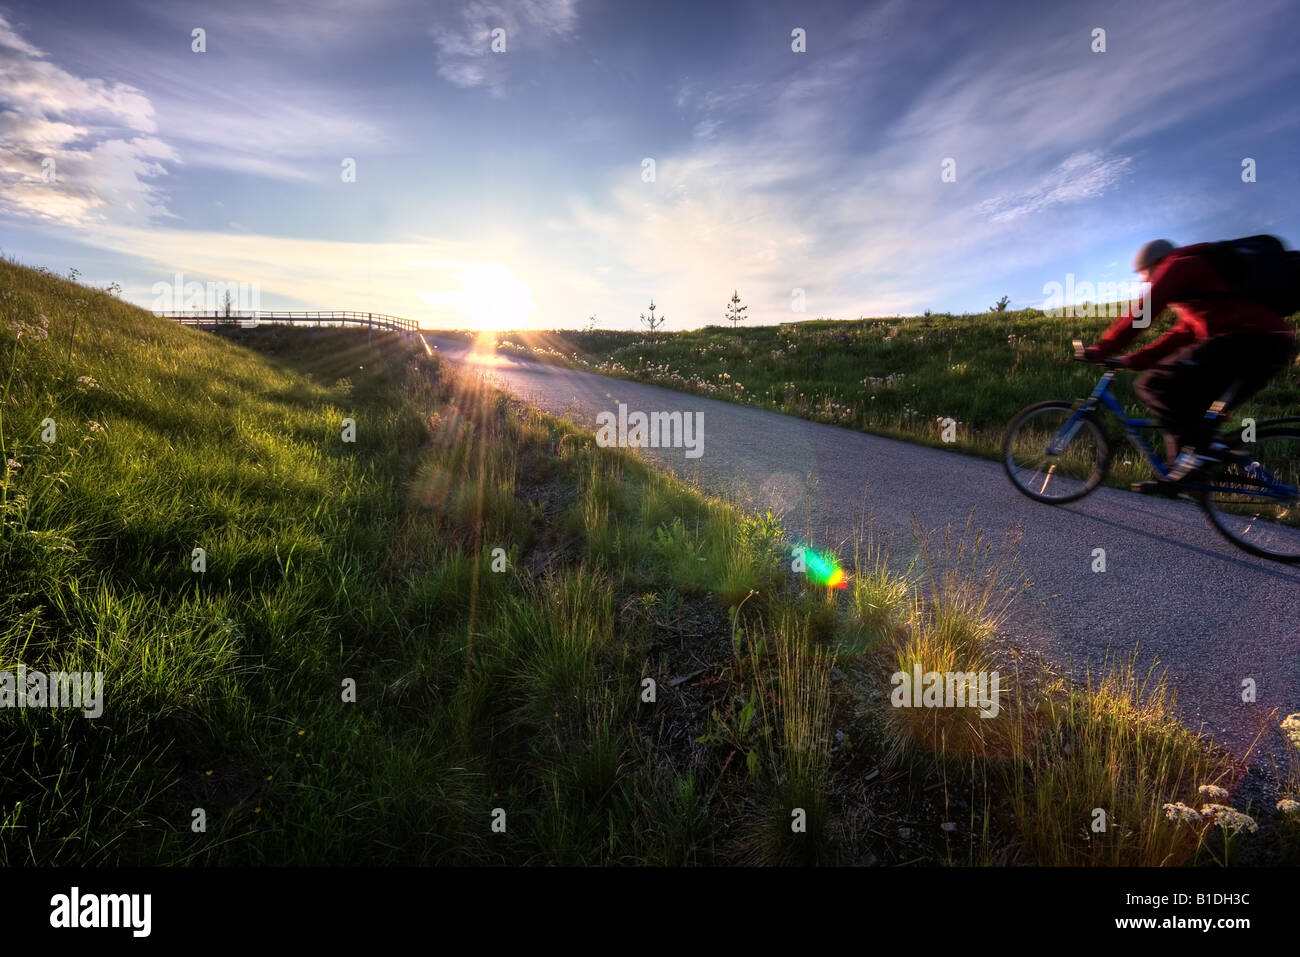 Bicycle ride - Stock Image